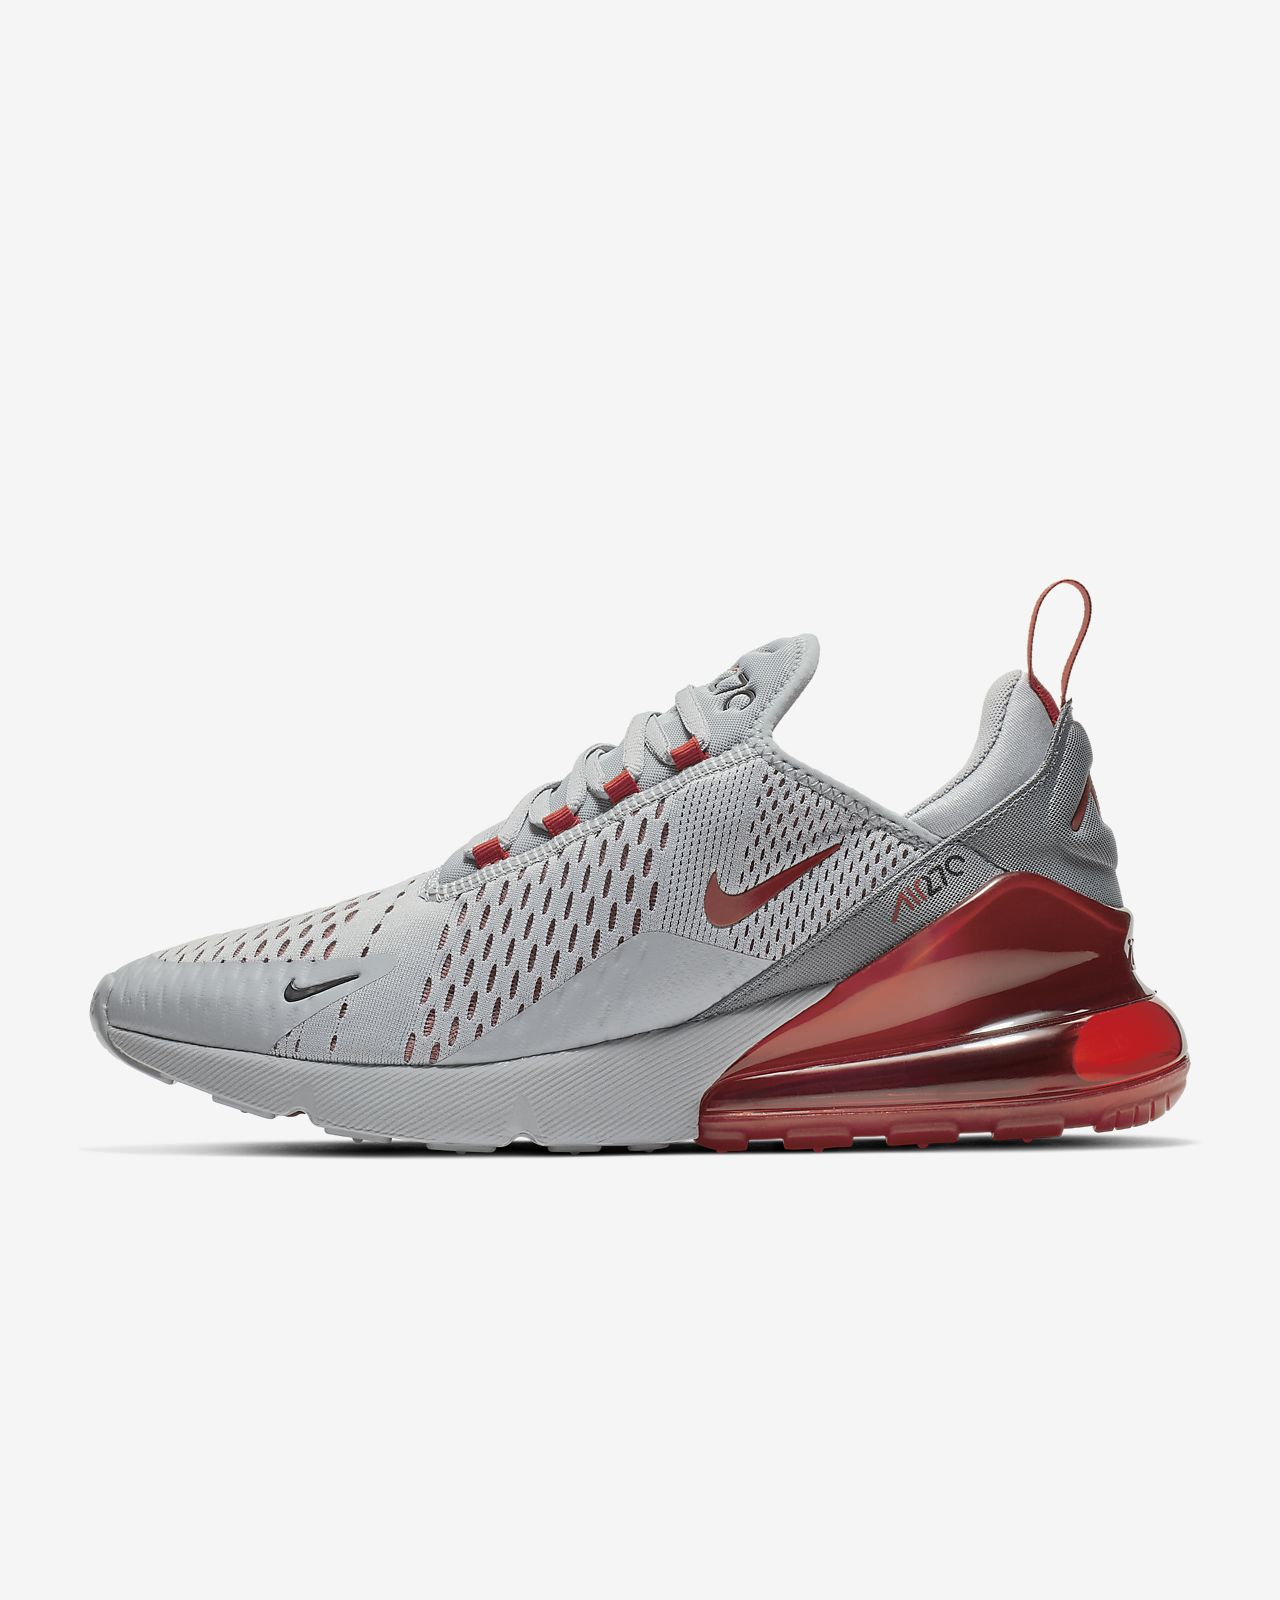 cheaper 7acaf 2ef54 Nike Air Max 270